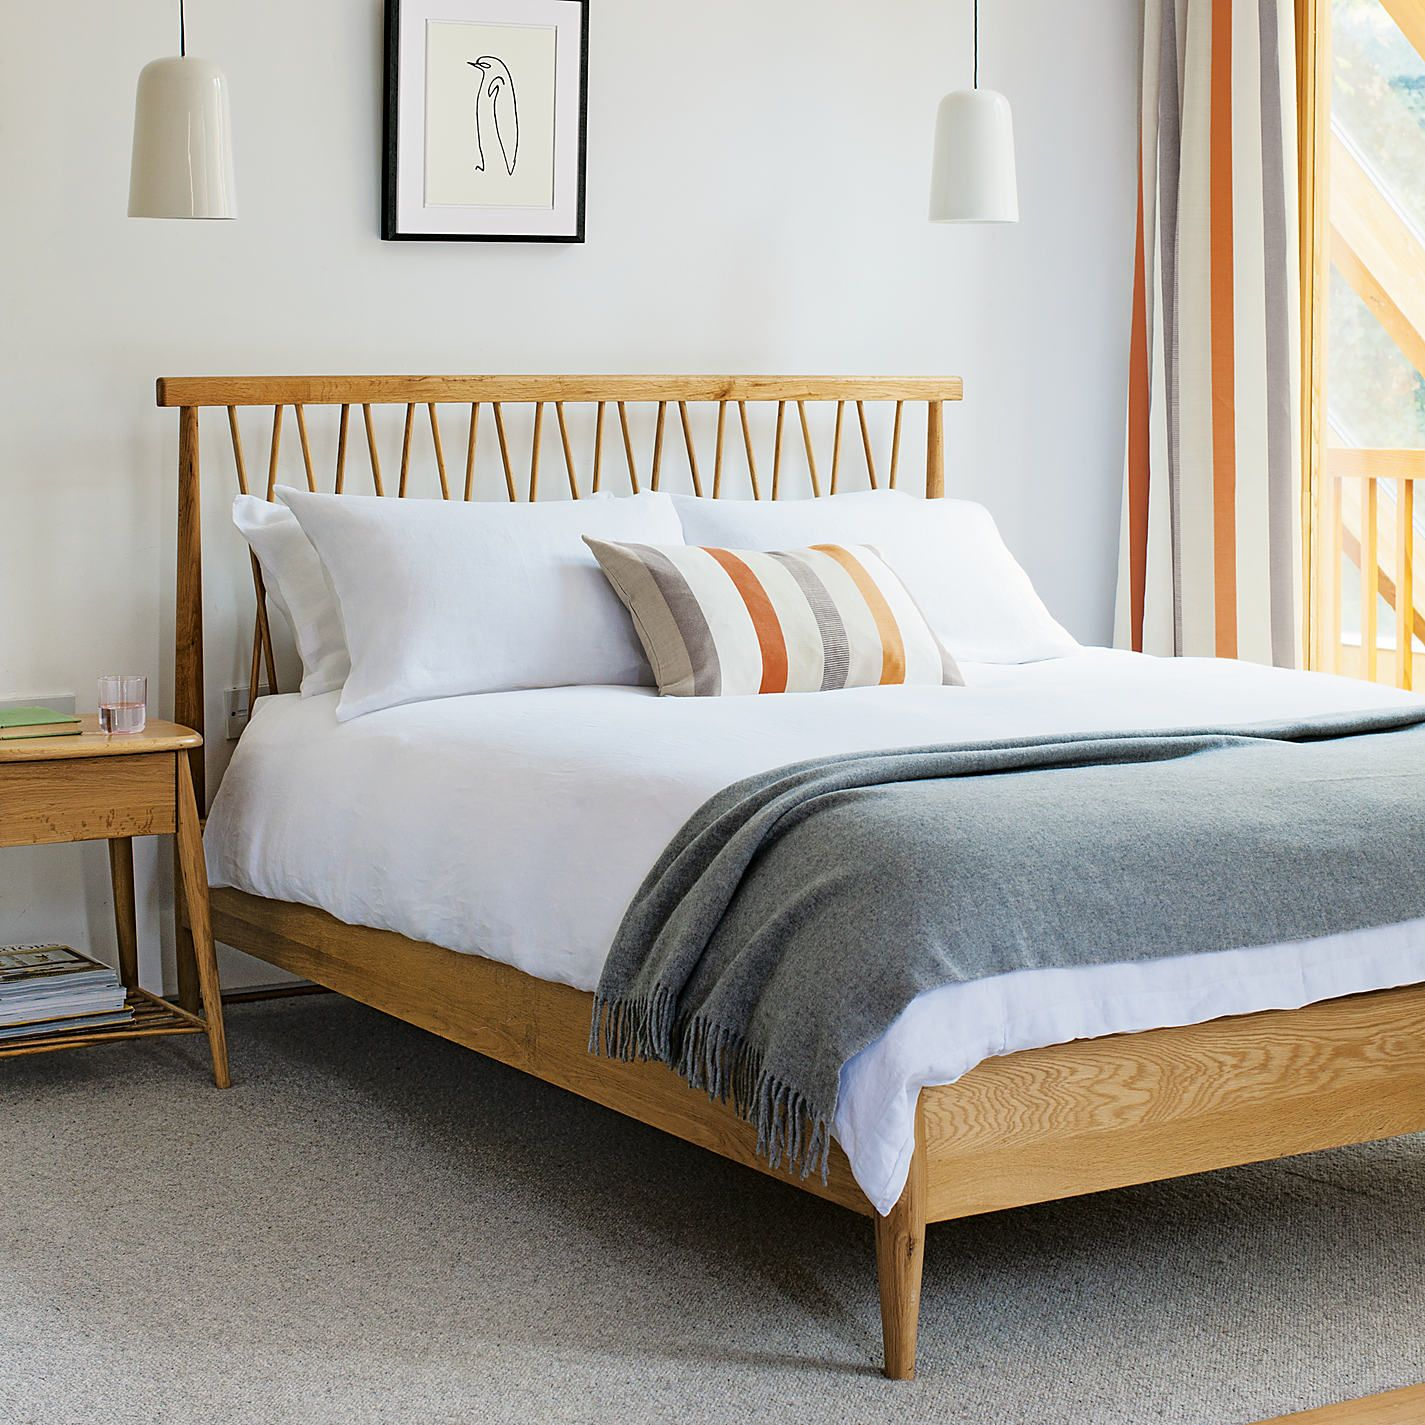 Pin By Lauren Lubell On Bed Inspiration Details Pinterest Ercol Bed John Lewis And Bedrooms